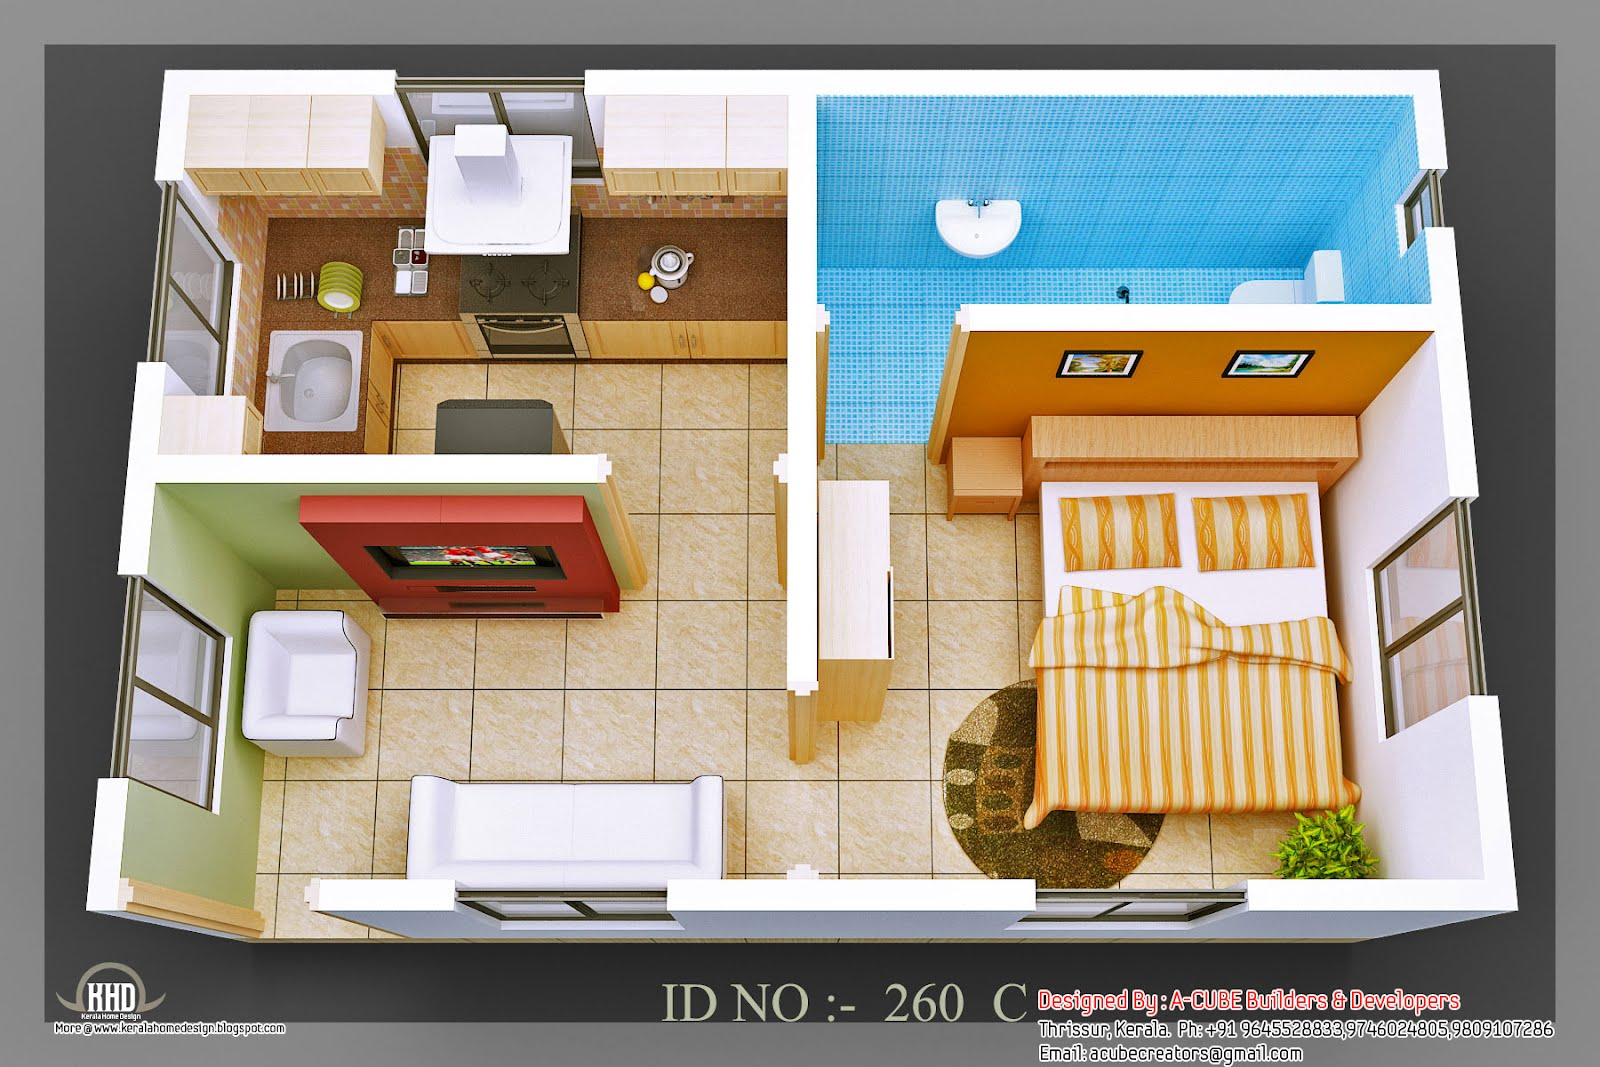 3d isometric views of small house plans a taste in heaven Home decor website